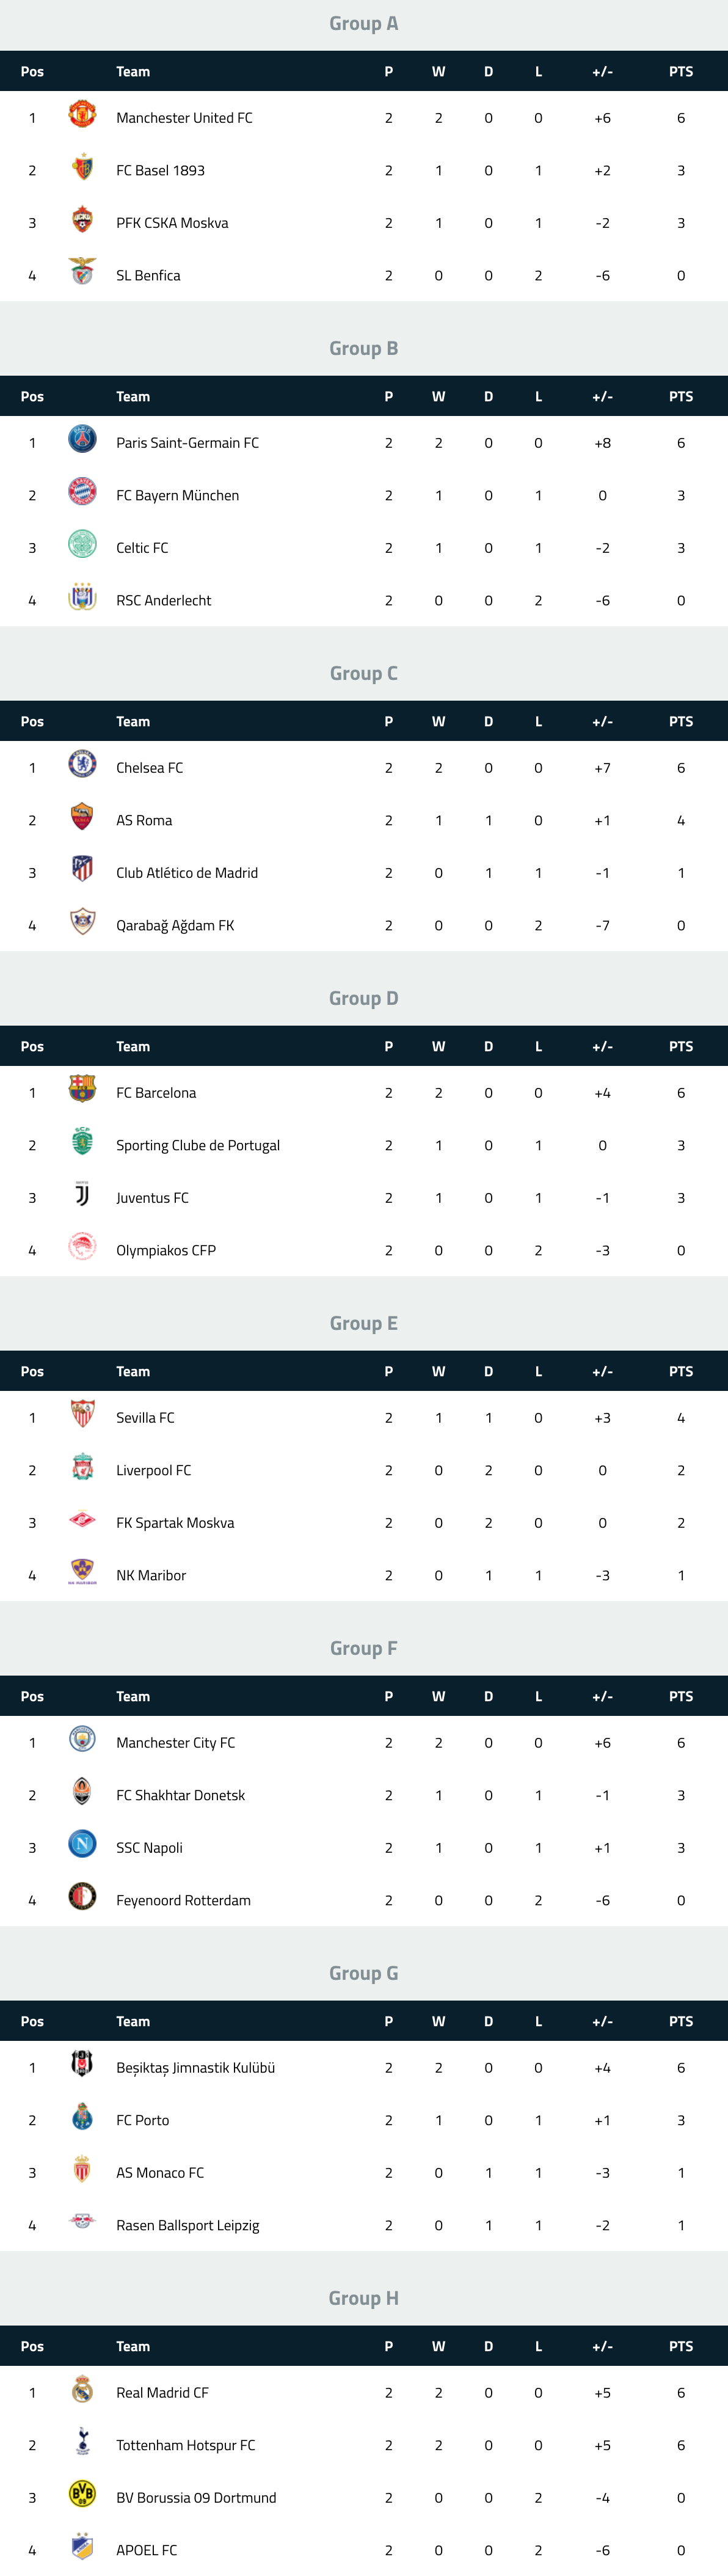 UEFA Champions League Table